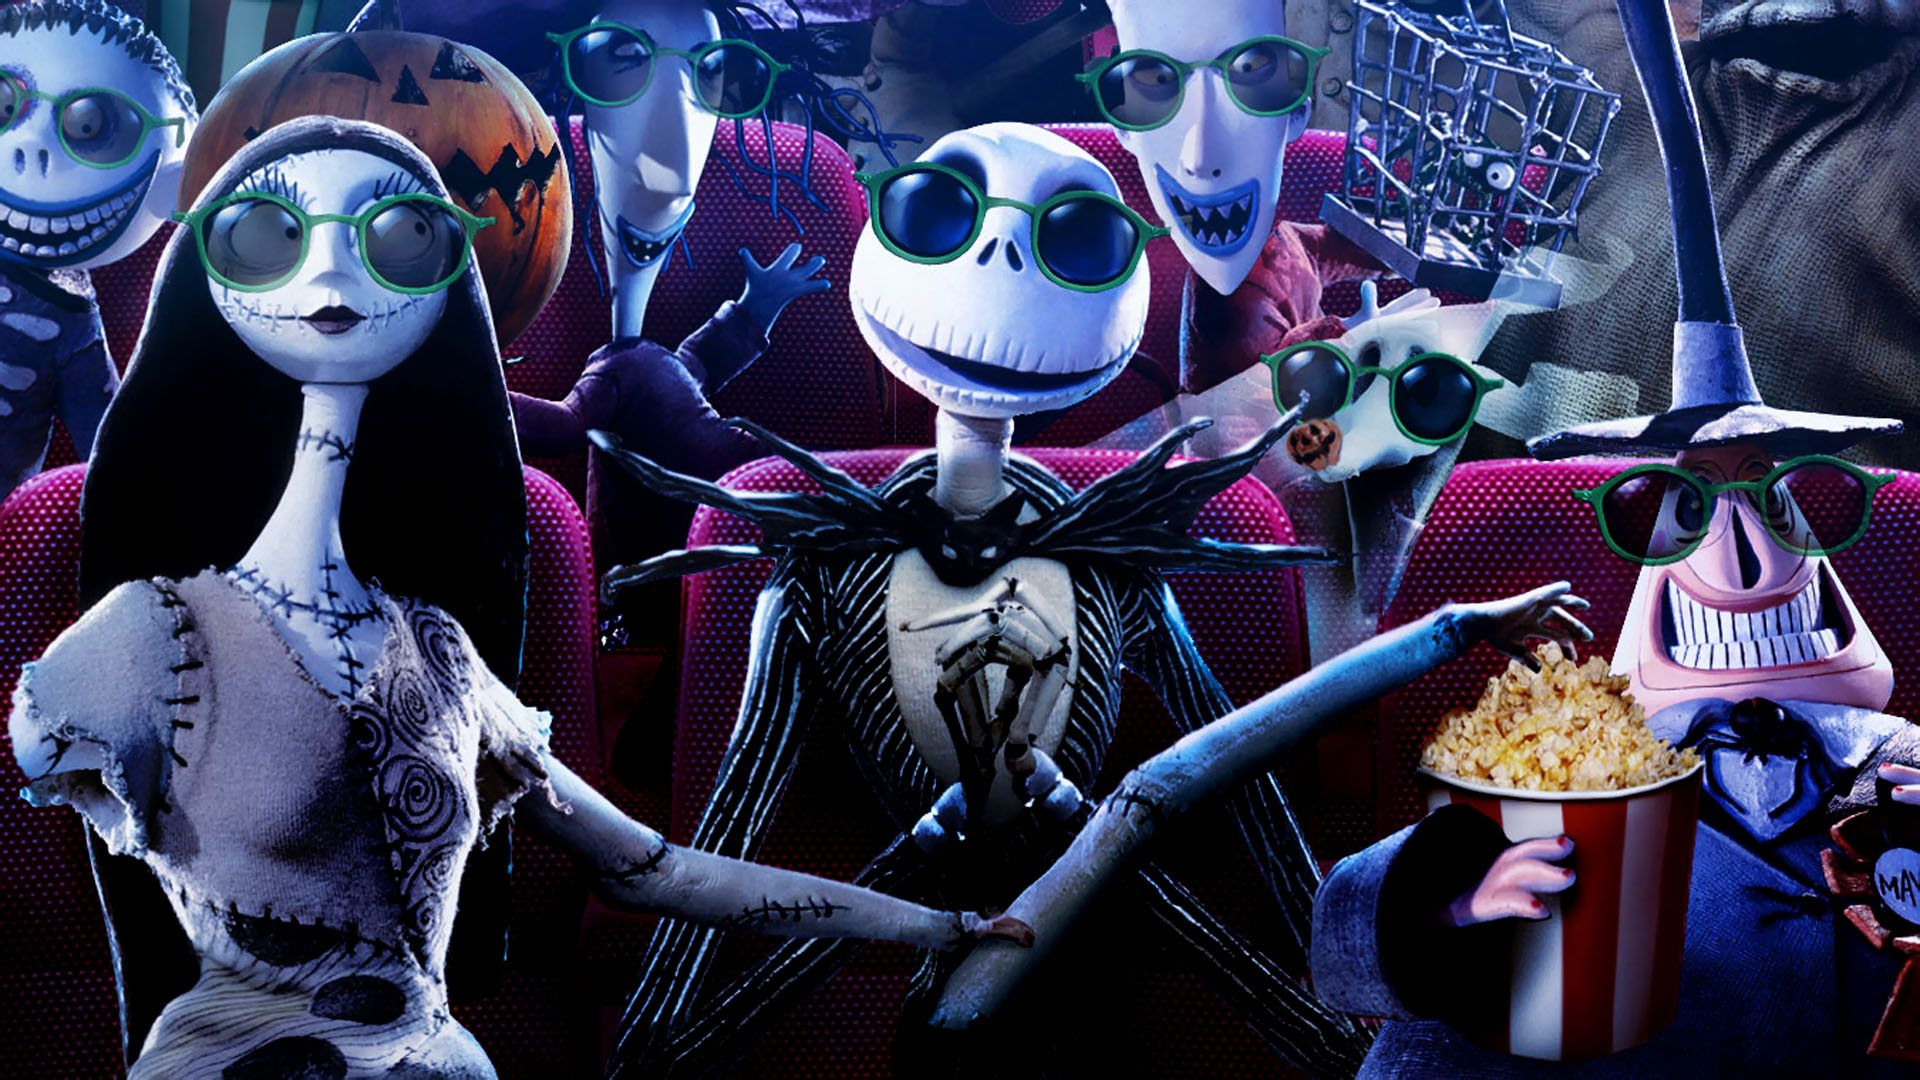 35 Jack Skellington Wallpaper Hd On Wallpapersafari